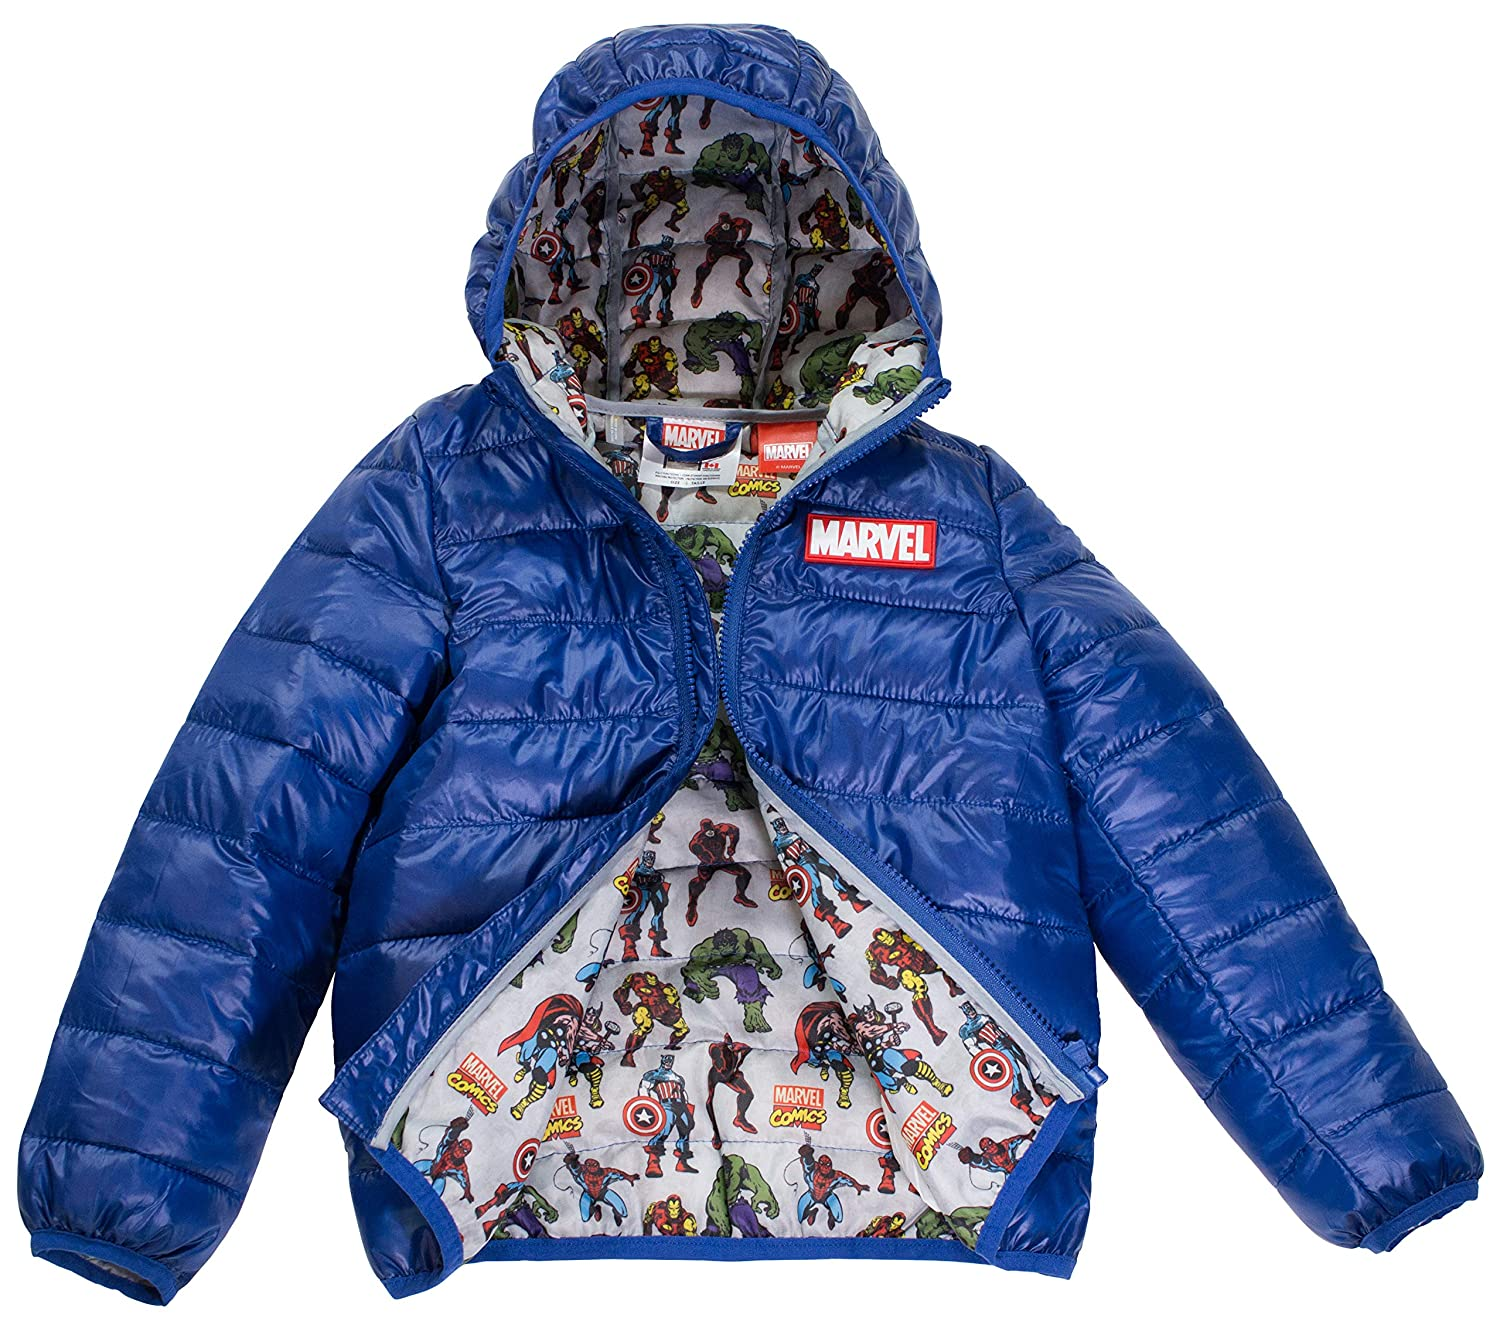 Marvel Avengers Boys Ultralight Hooded Puffer Jacket Size 4 7 Official Licensed Product